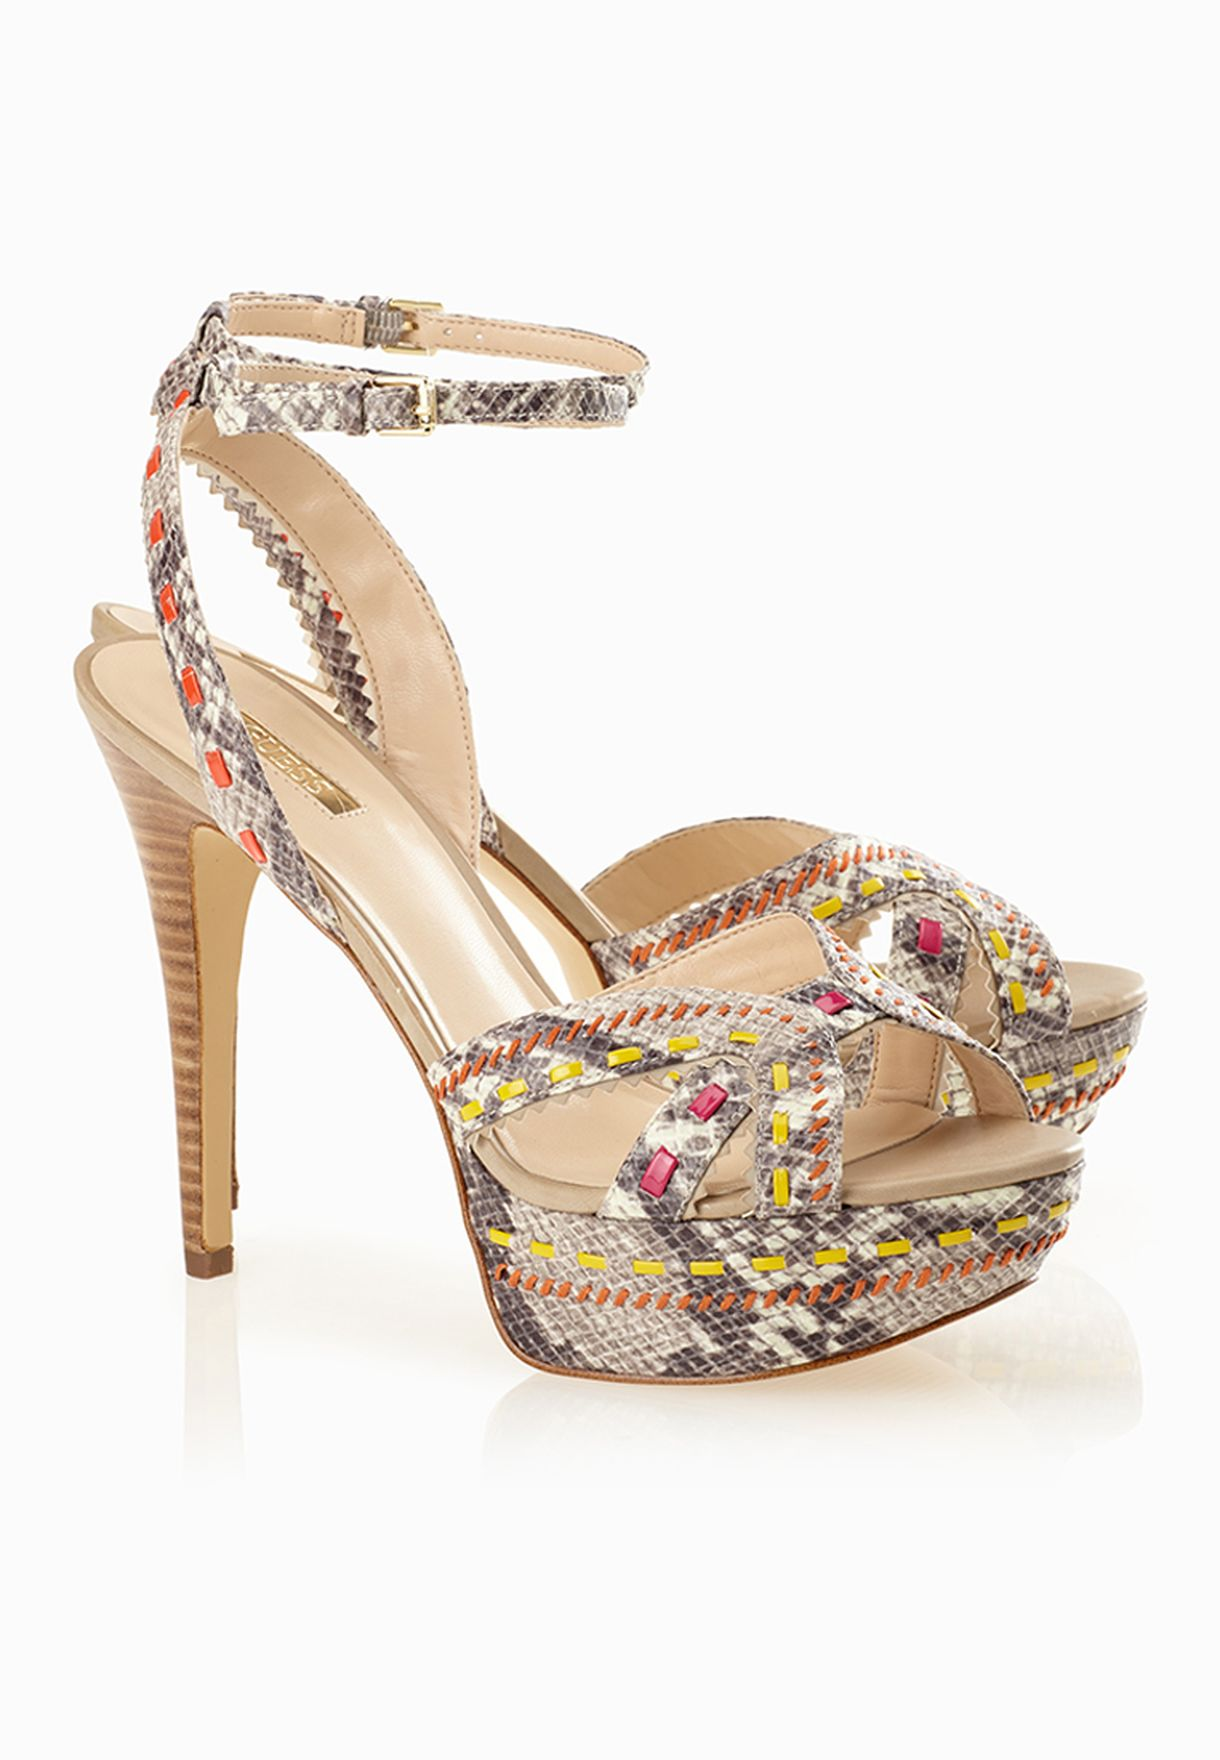 0c6785e49 Shop Guess animalprint Ankle Strap Jeweled Sandals gwODONNA2-B for ...